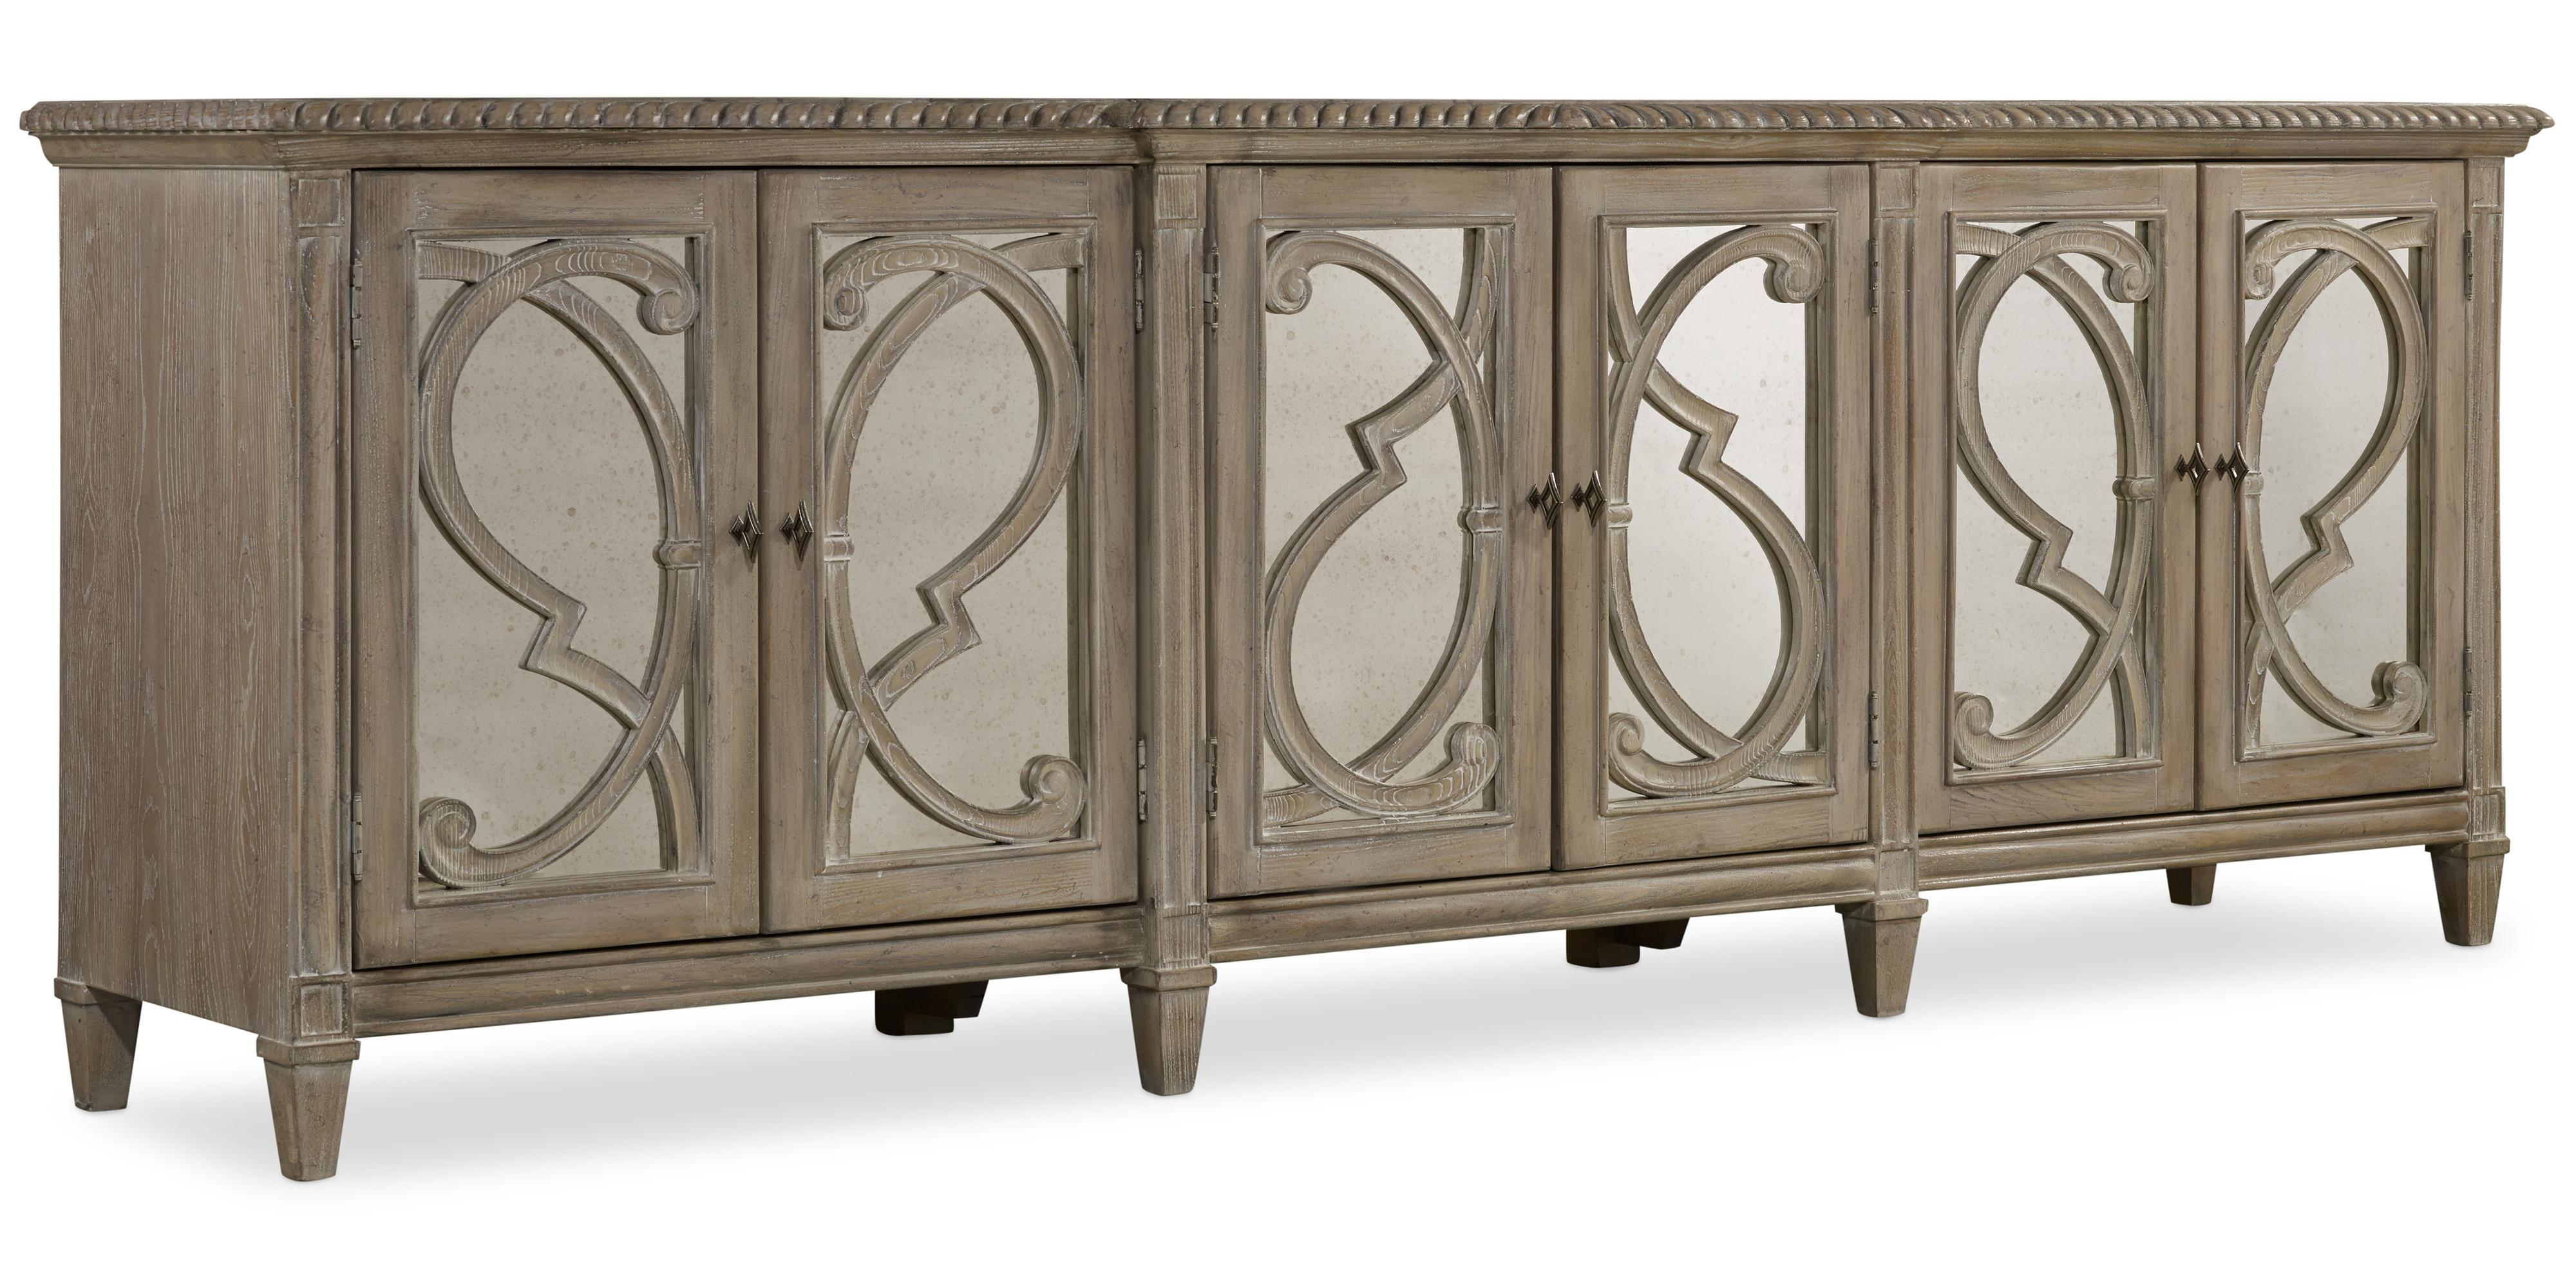 Console with 6 Glass Doors and Decorative Wood Overlay by Hooker